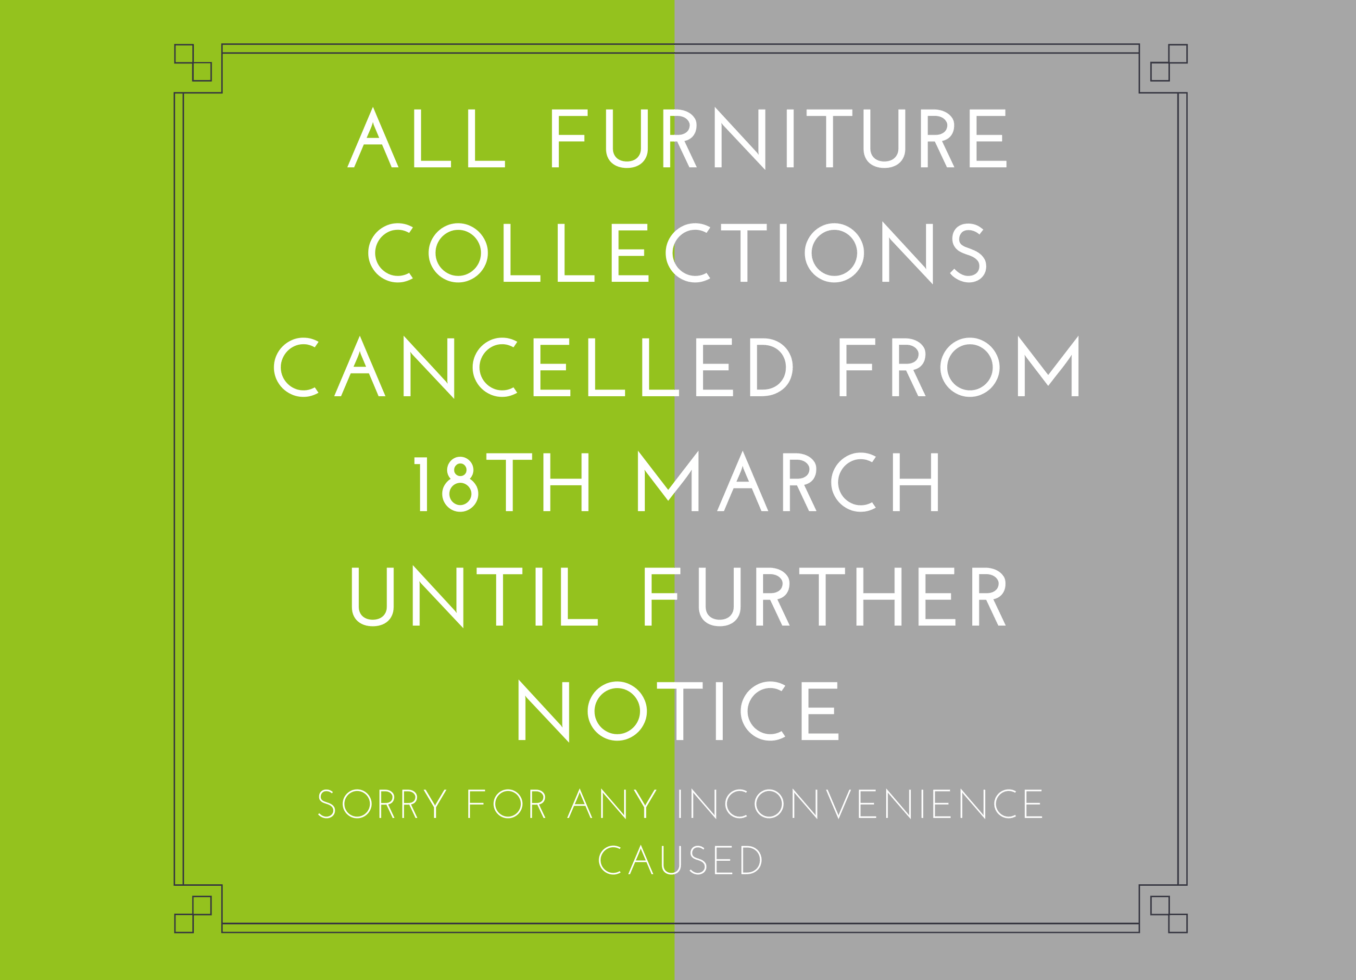 Collections cancelled from 18th March until further notice